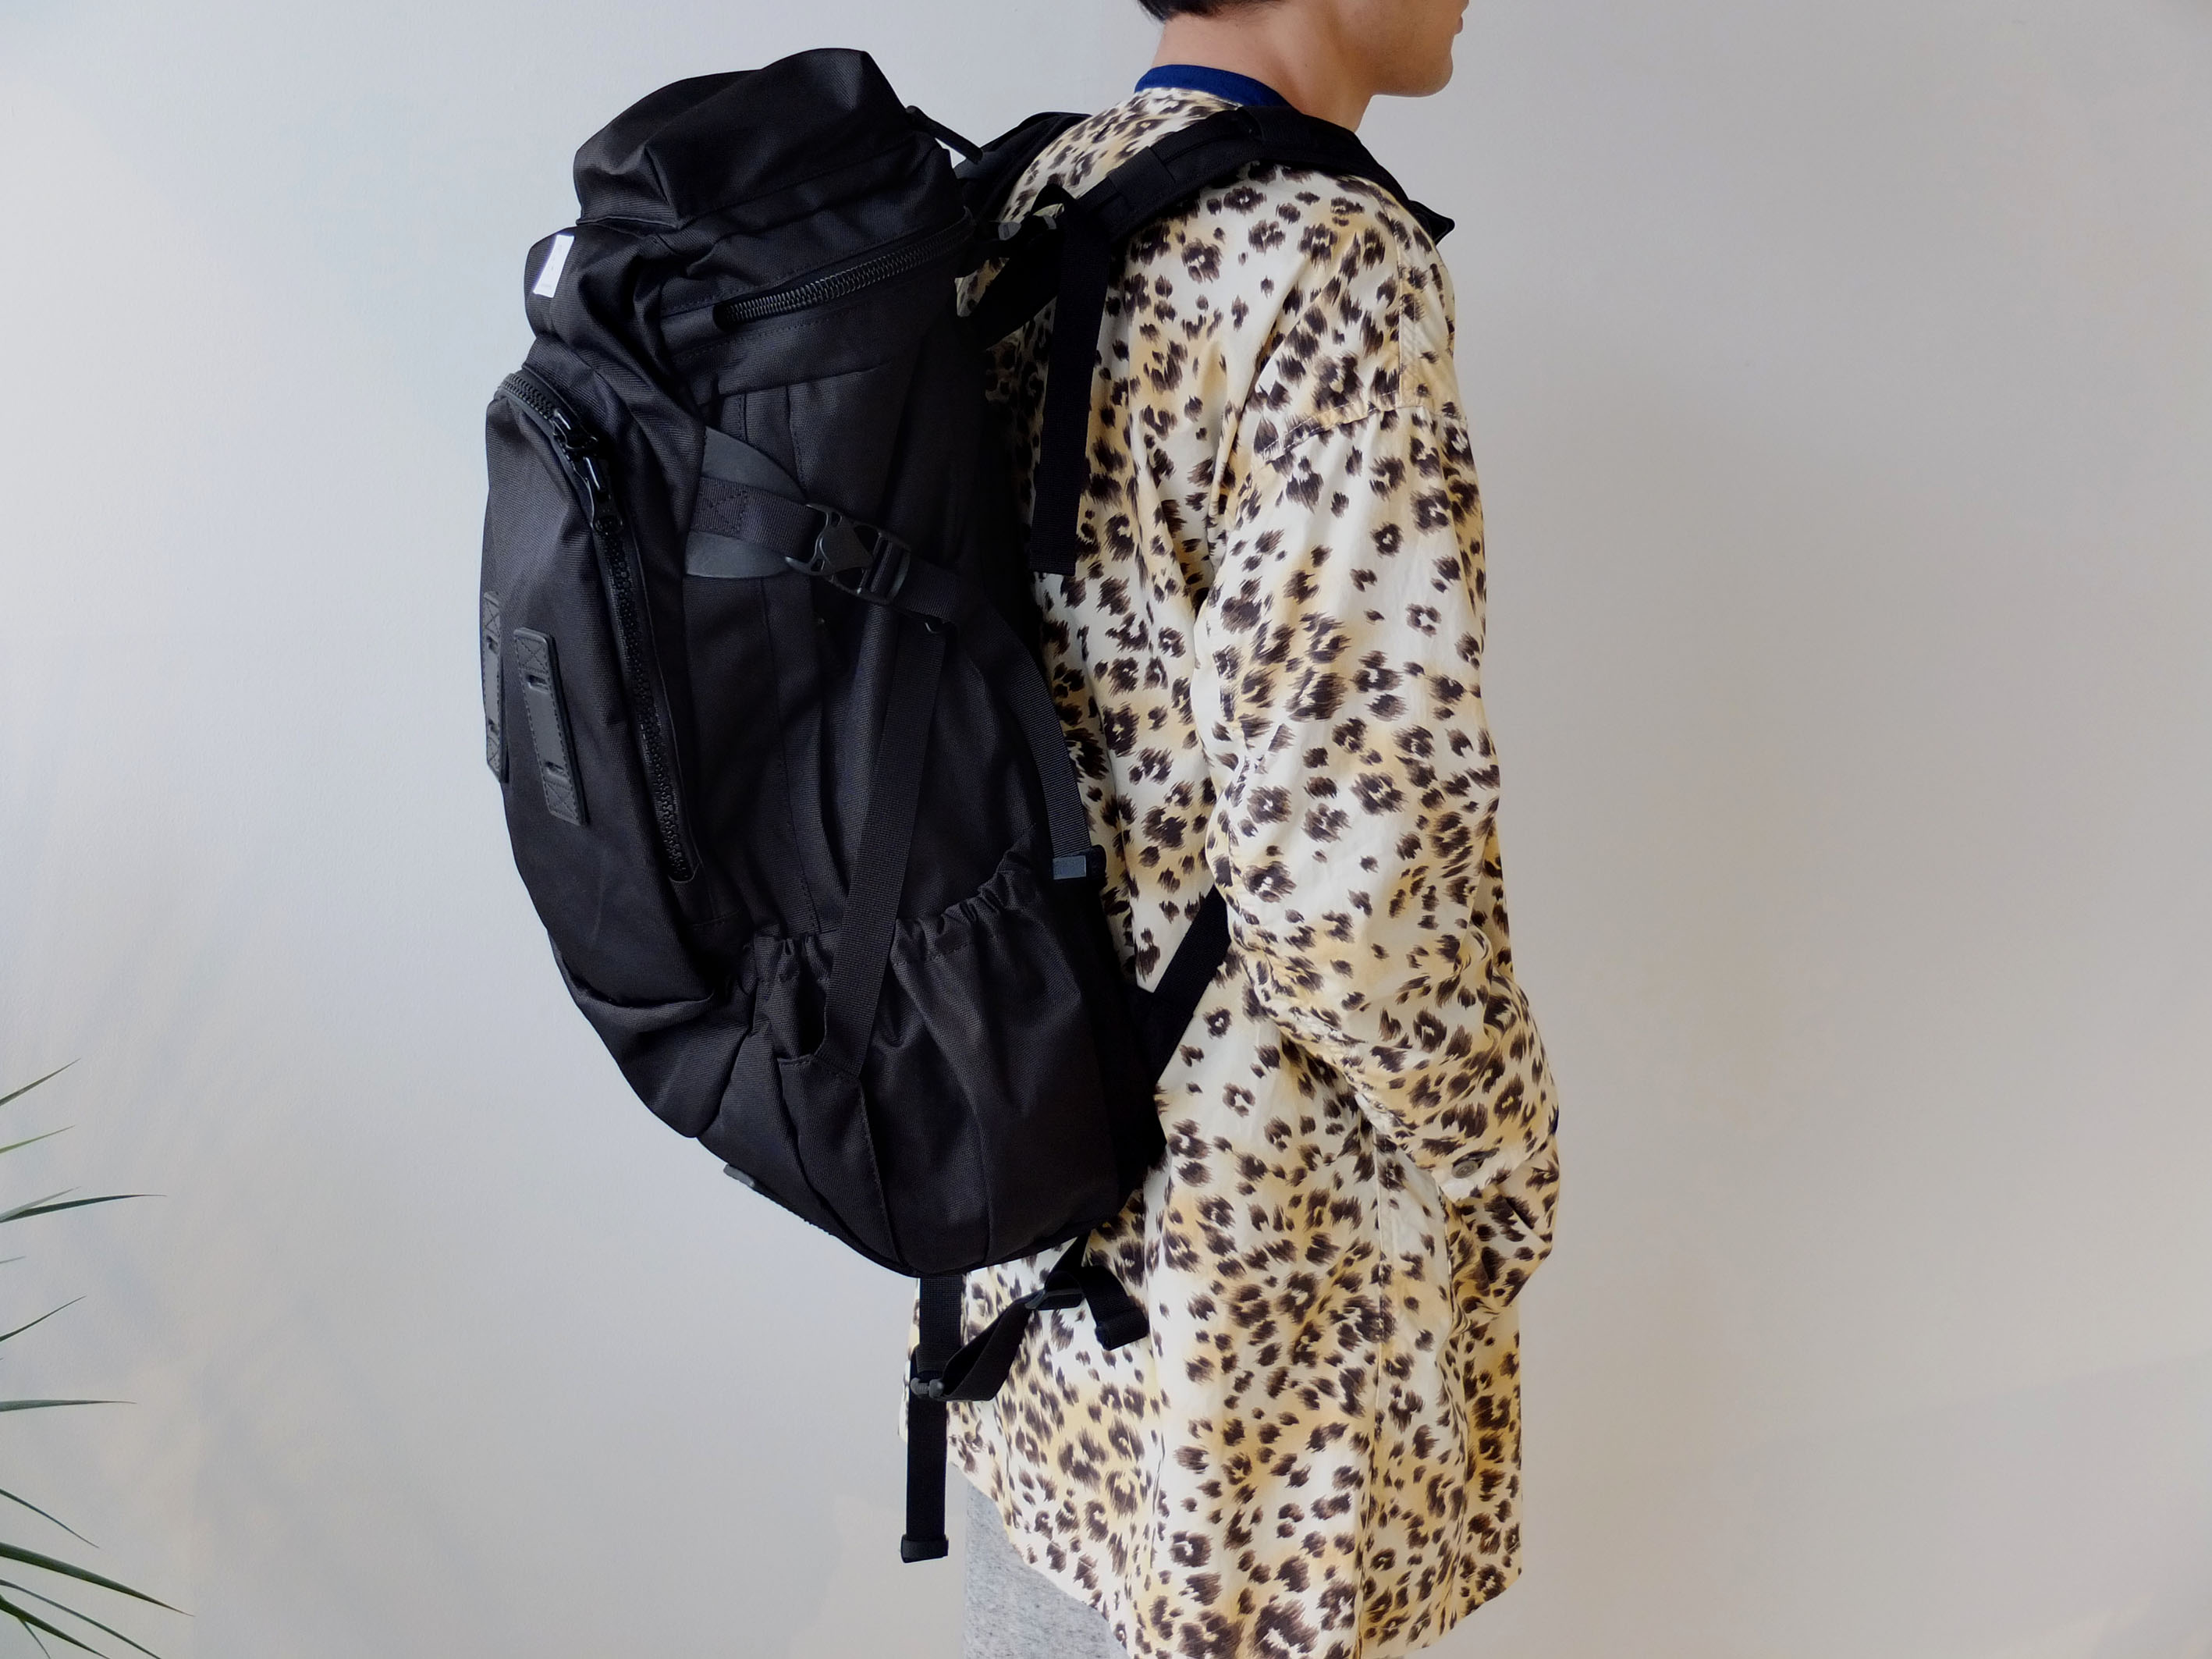 ficouture-bagpack_a